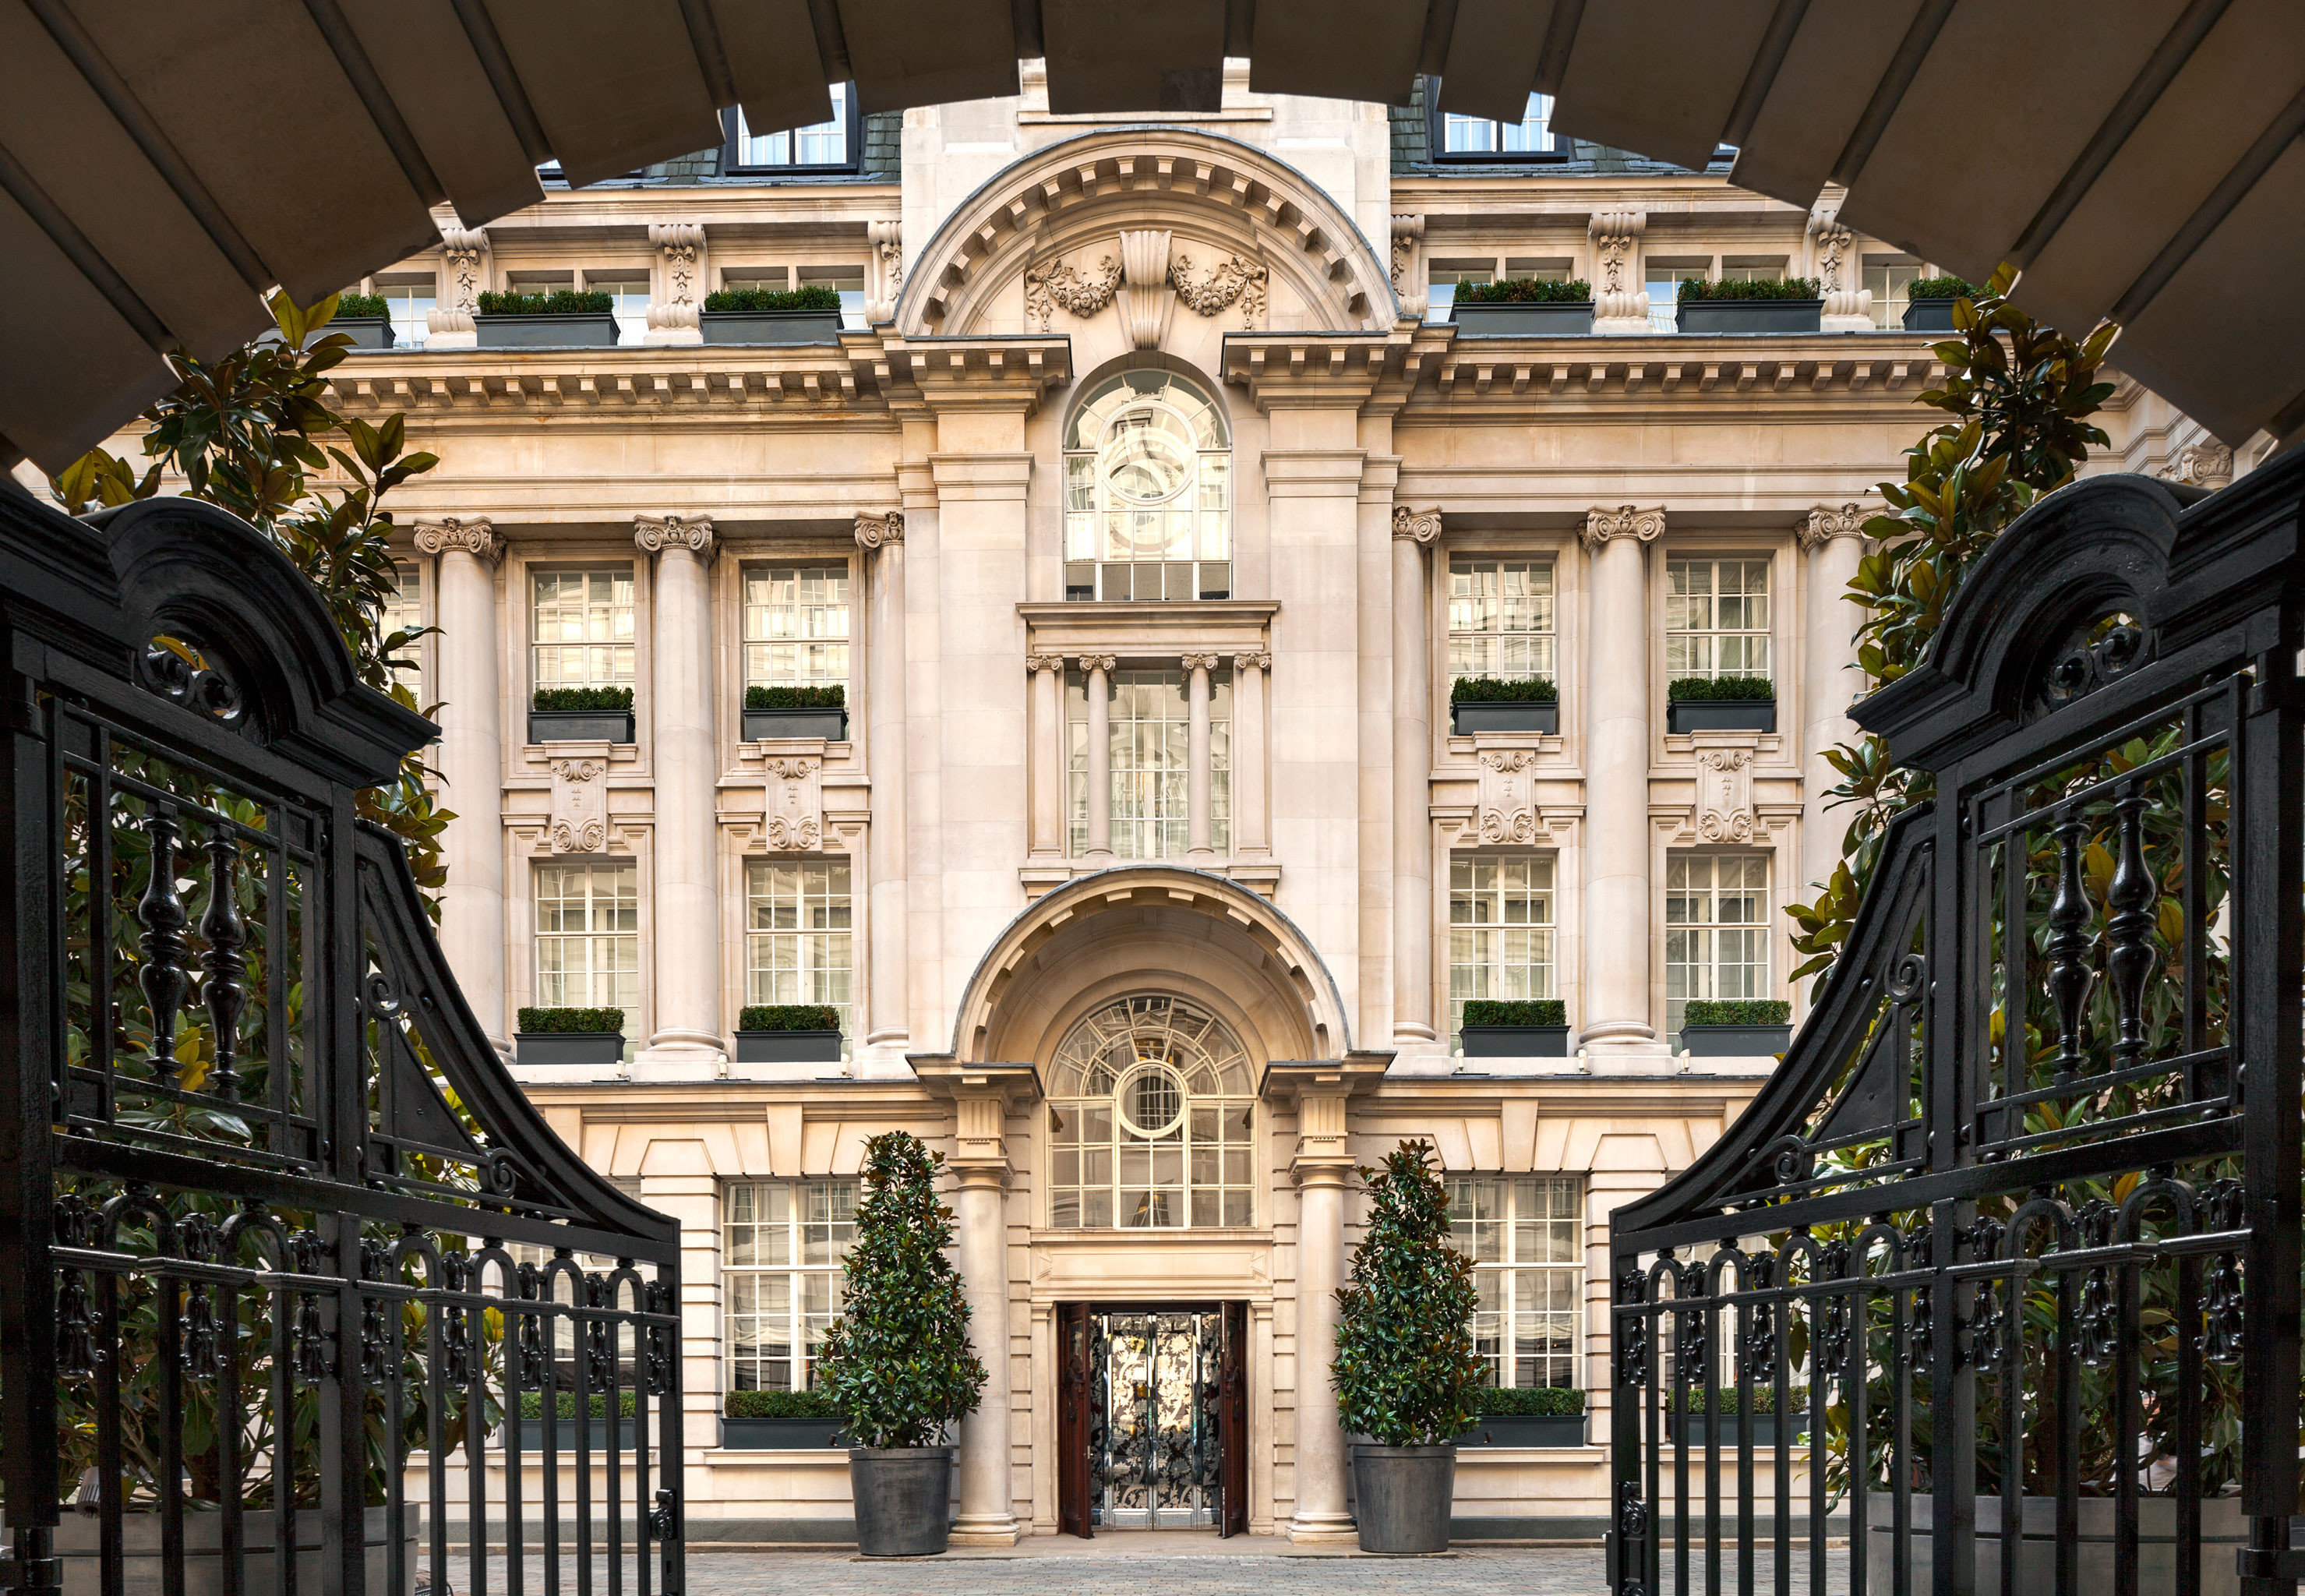 Architecture Buildings Elegant Exterior Historic building landmark palace symmetry mansion tourist attraction arch synagogue walkway